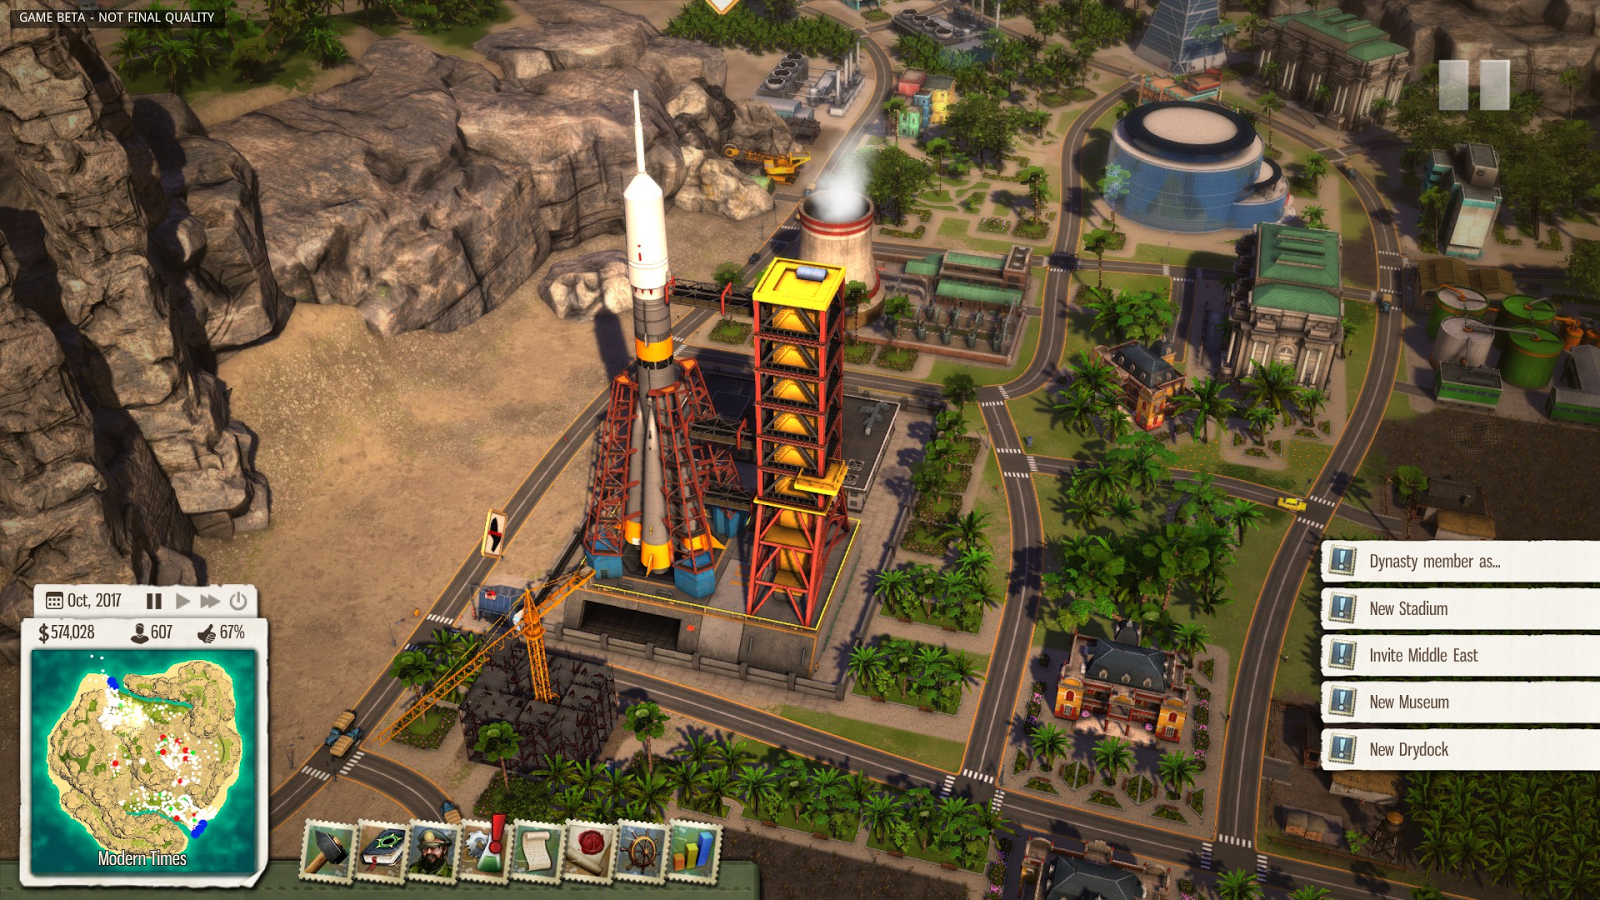 Tropico5 Screens April 2nd 2014 02 - Tropico 5 Complete Collection PC